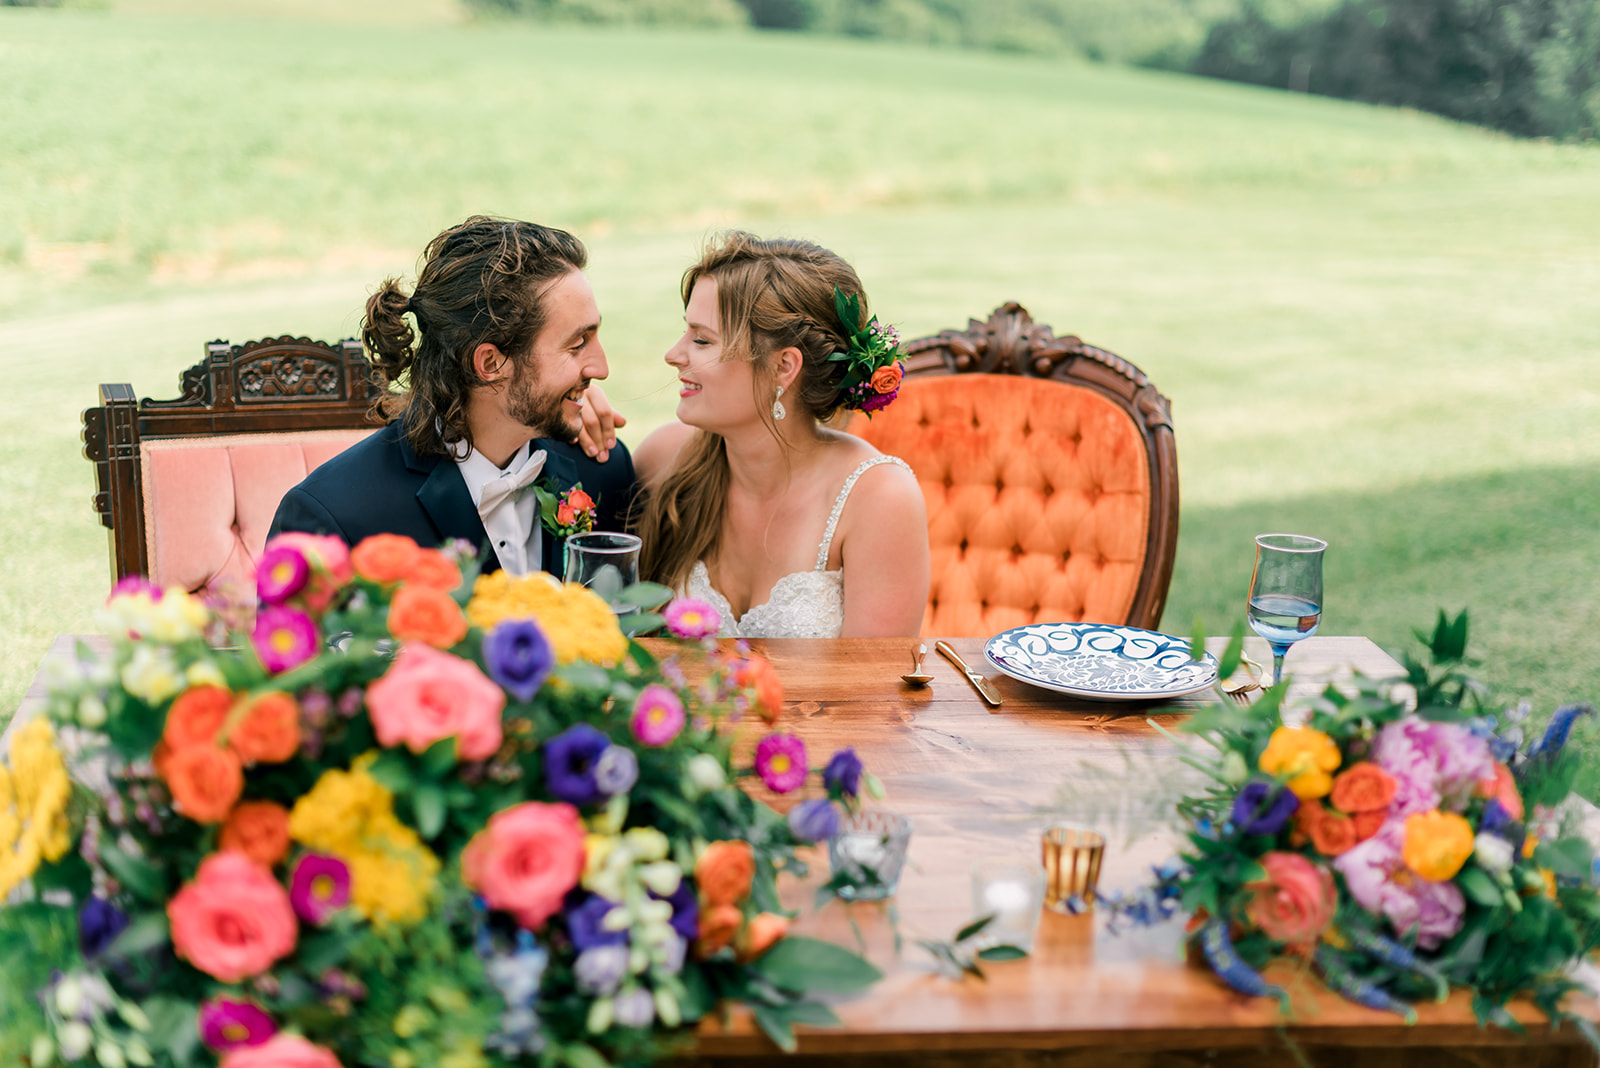 Fun & Colorful Barn Wedding Sweetheart Table at Heaven Sent Farms in Avella Dawn Derbyshire Photography  (3).jpg